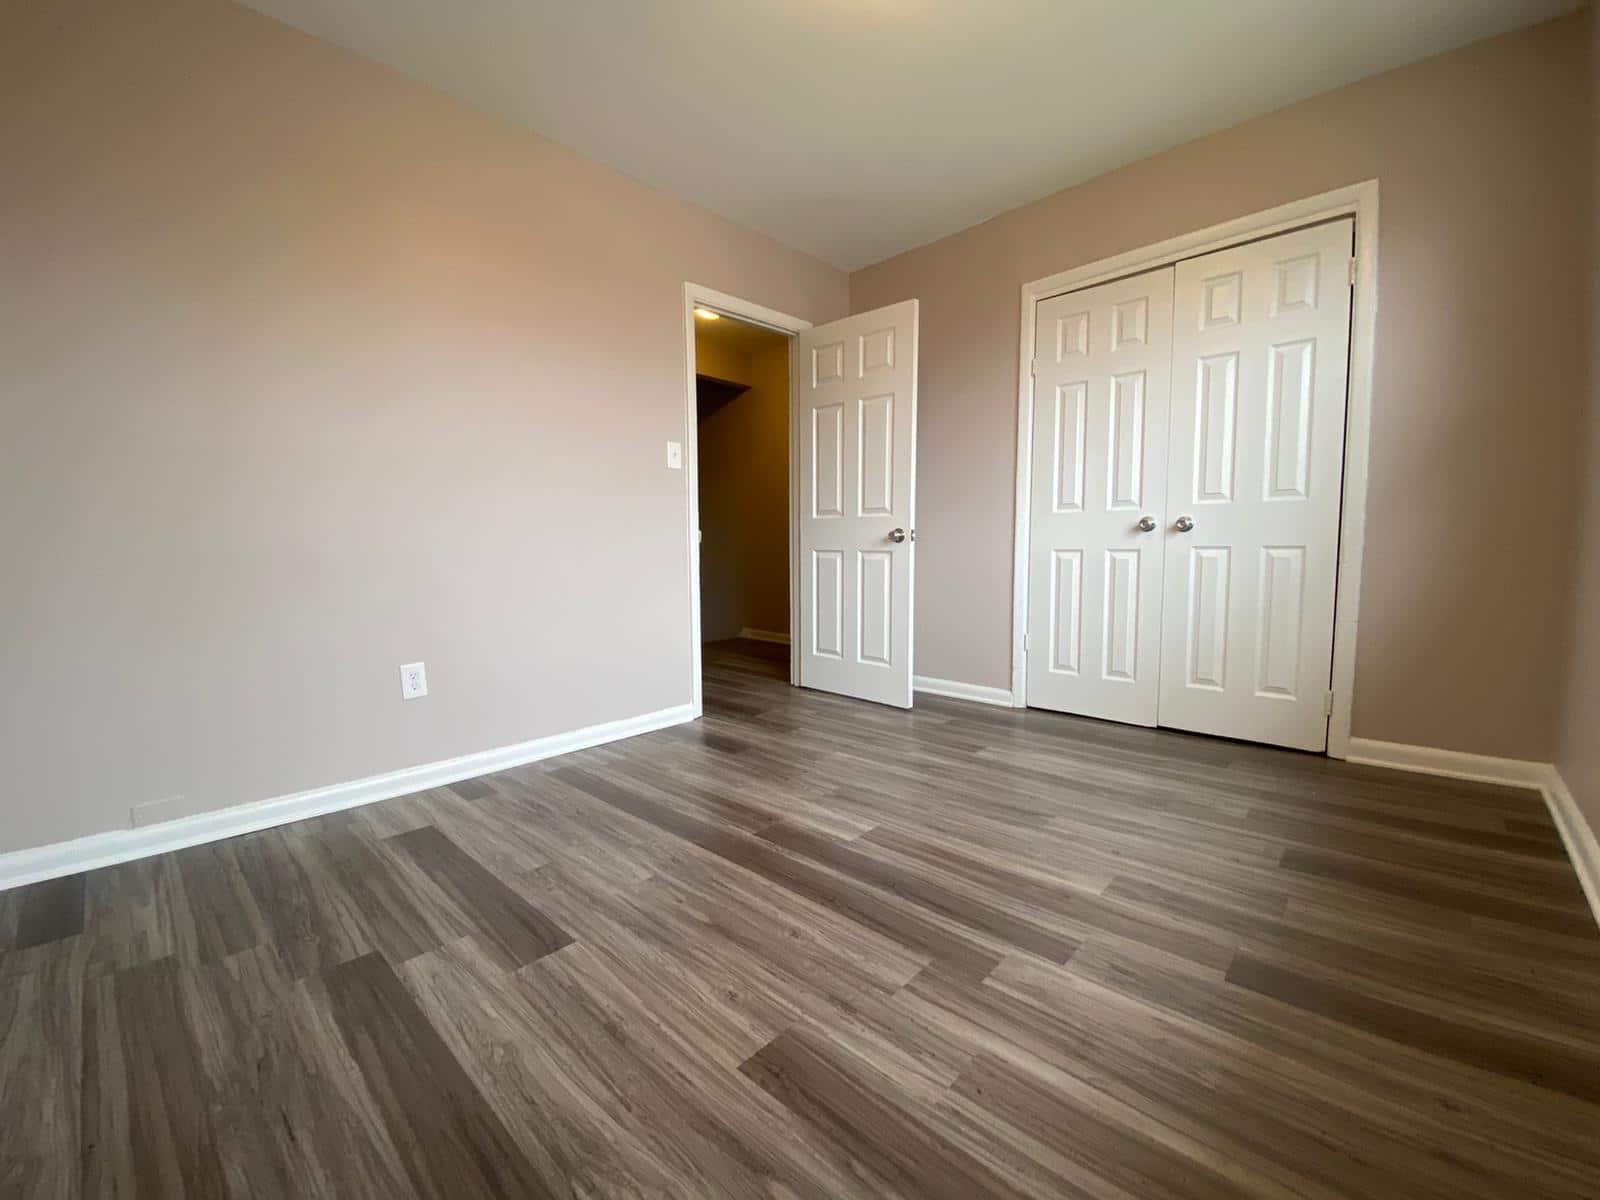 Bedroom at Rogers Townhomes